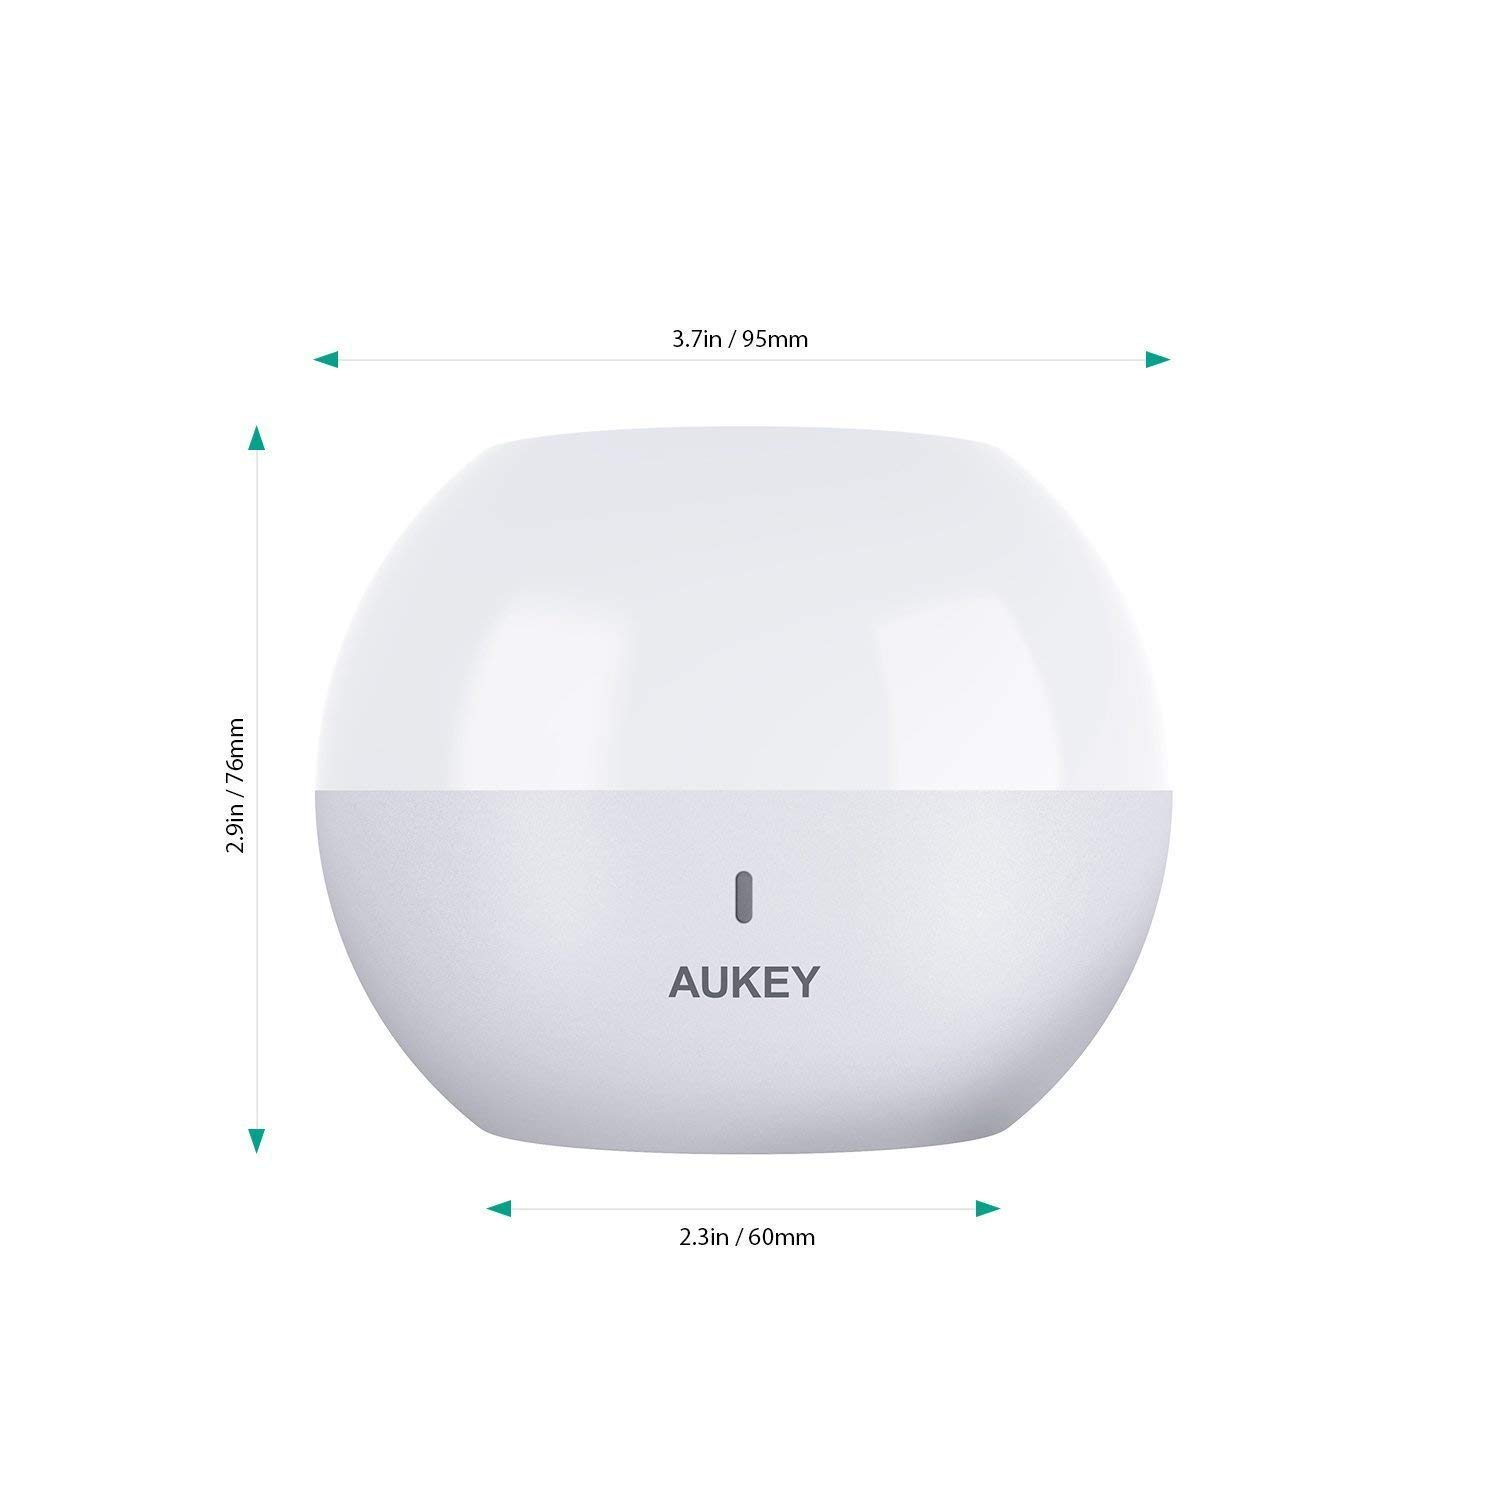 Rechargeable Bedside Lamp with RGB Color-Changing /& Dimmable Bedroom Light and Relaxing AUKEY Night Light Touch Control Table Lamp for Reading Sleeping IP65 Water-Resistance /& Drop-Resistance